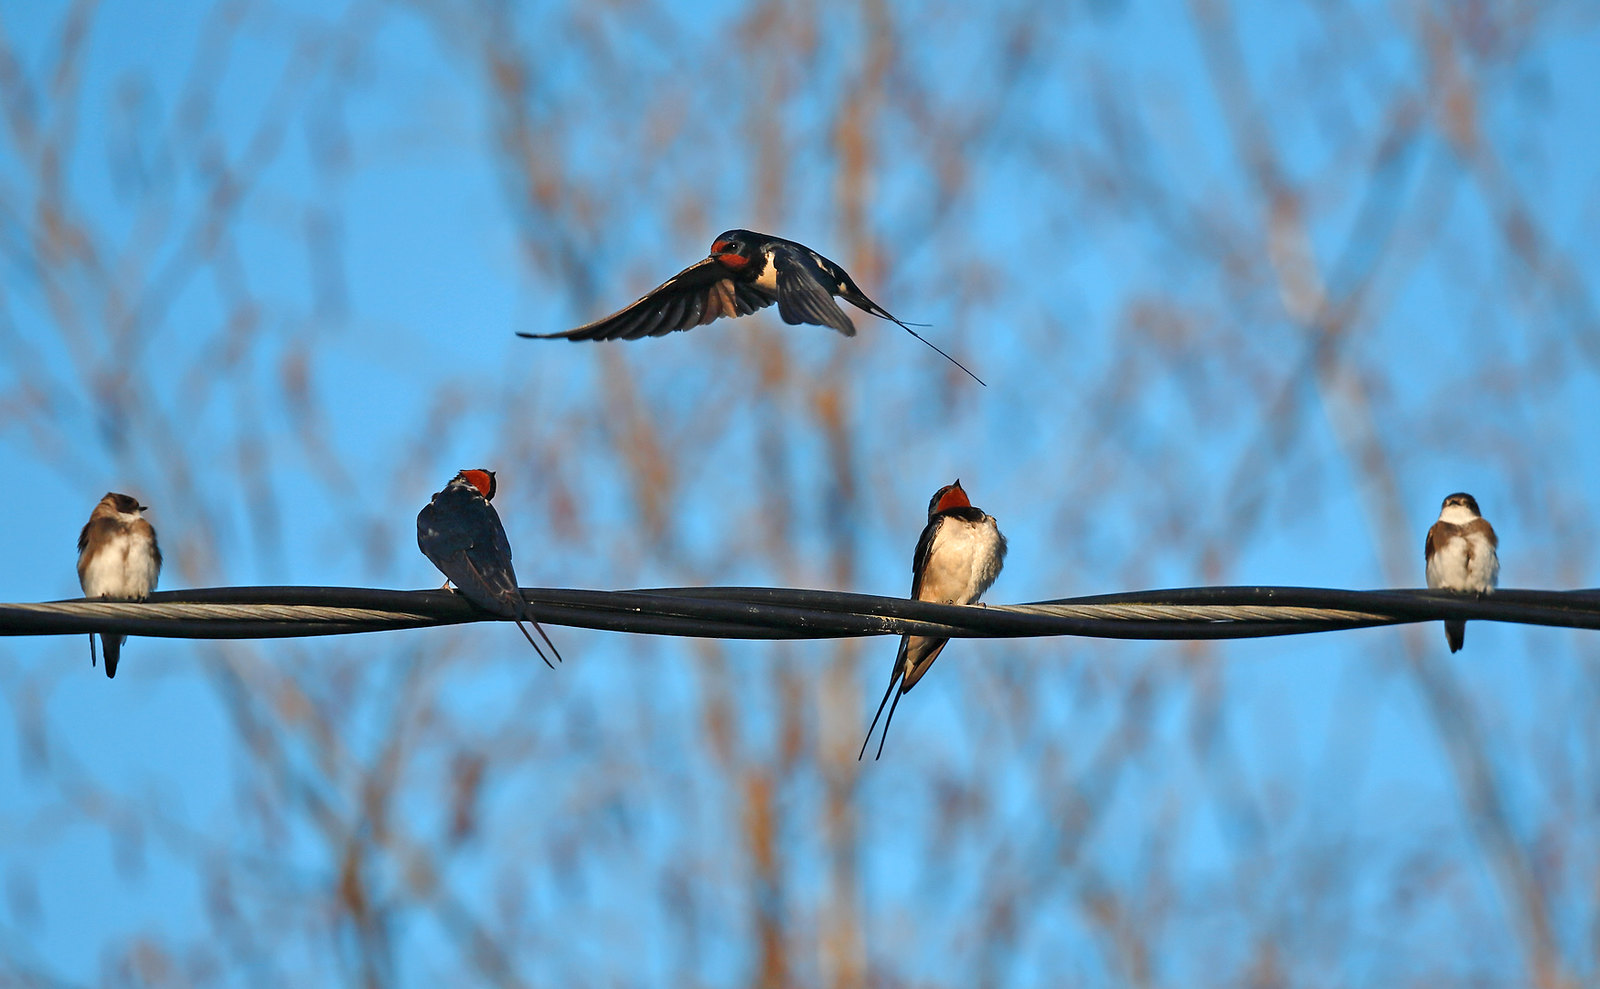 Swallow and Sand Martins